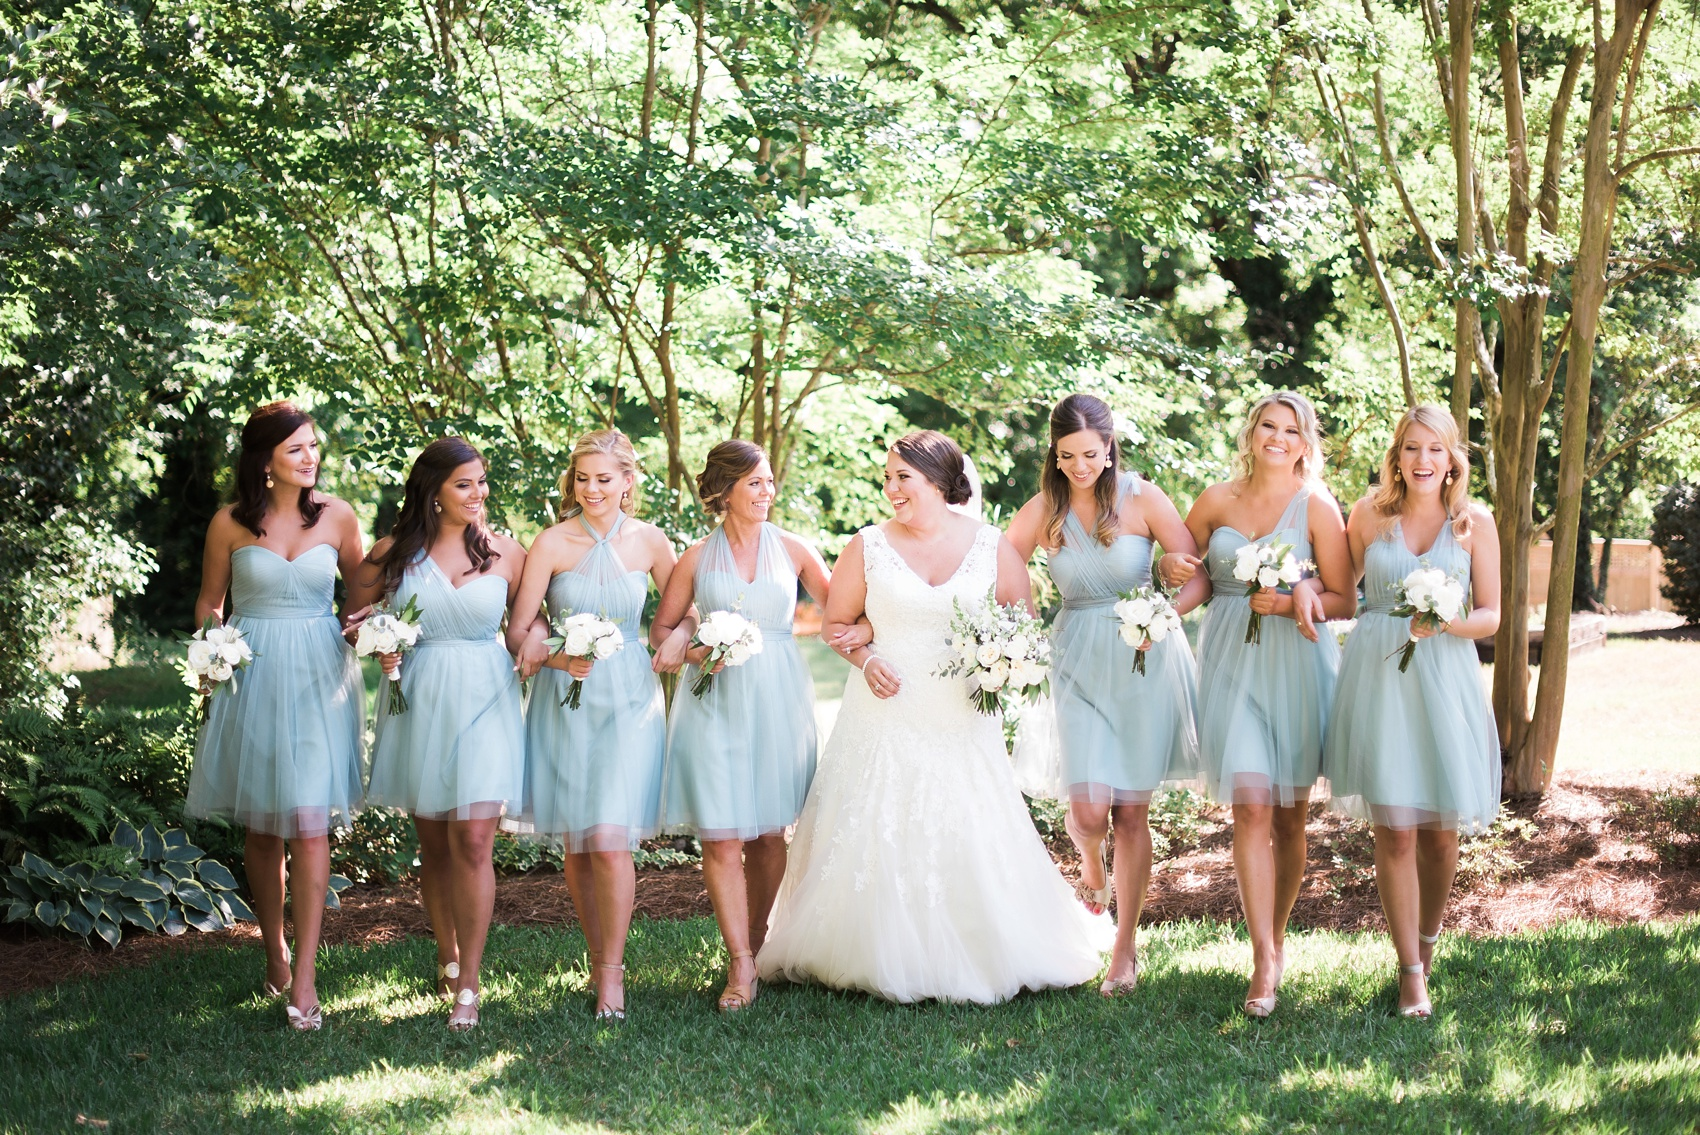 columbia_wedding_photographer_0274.jpg